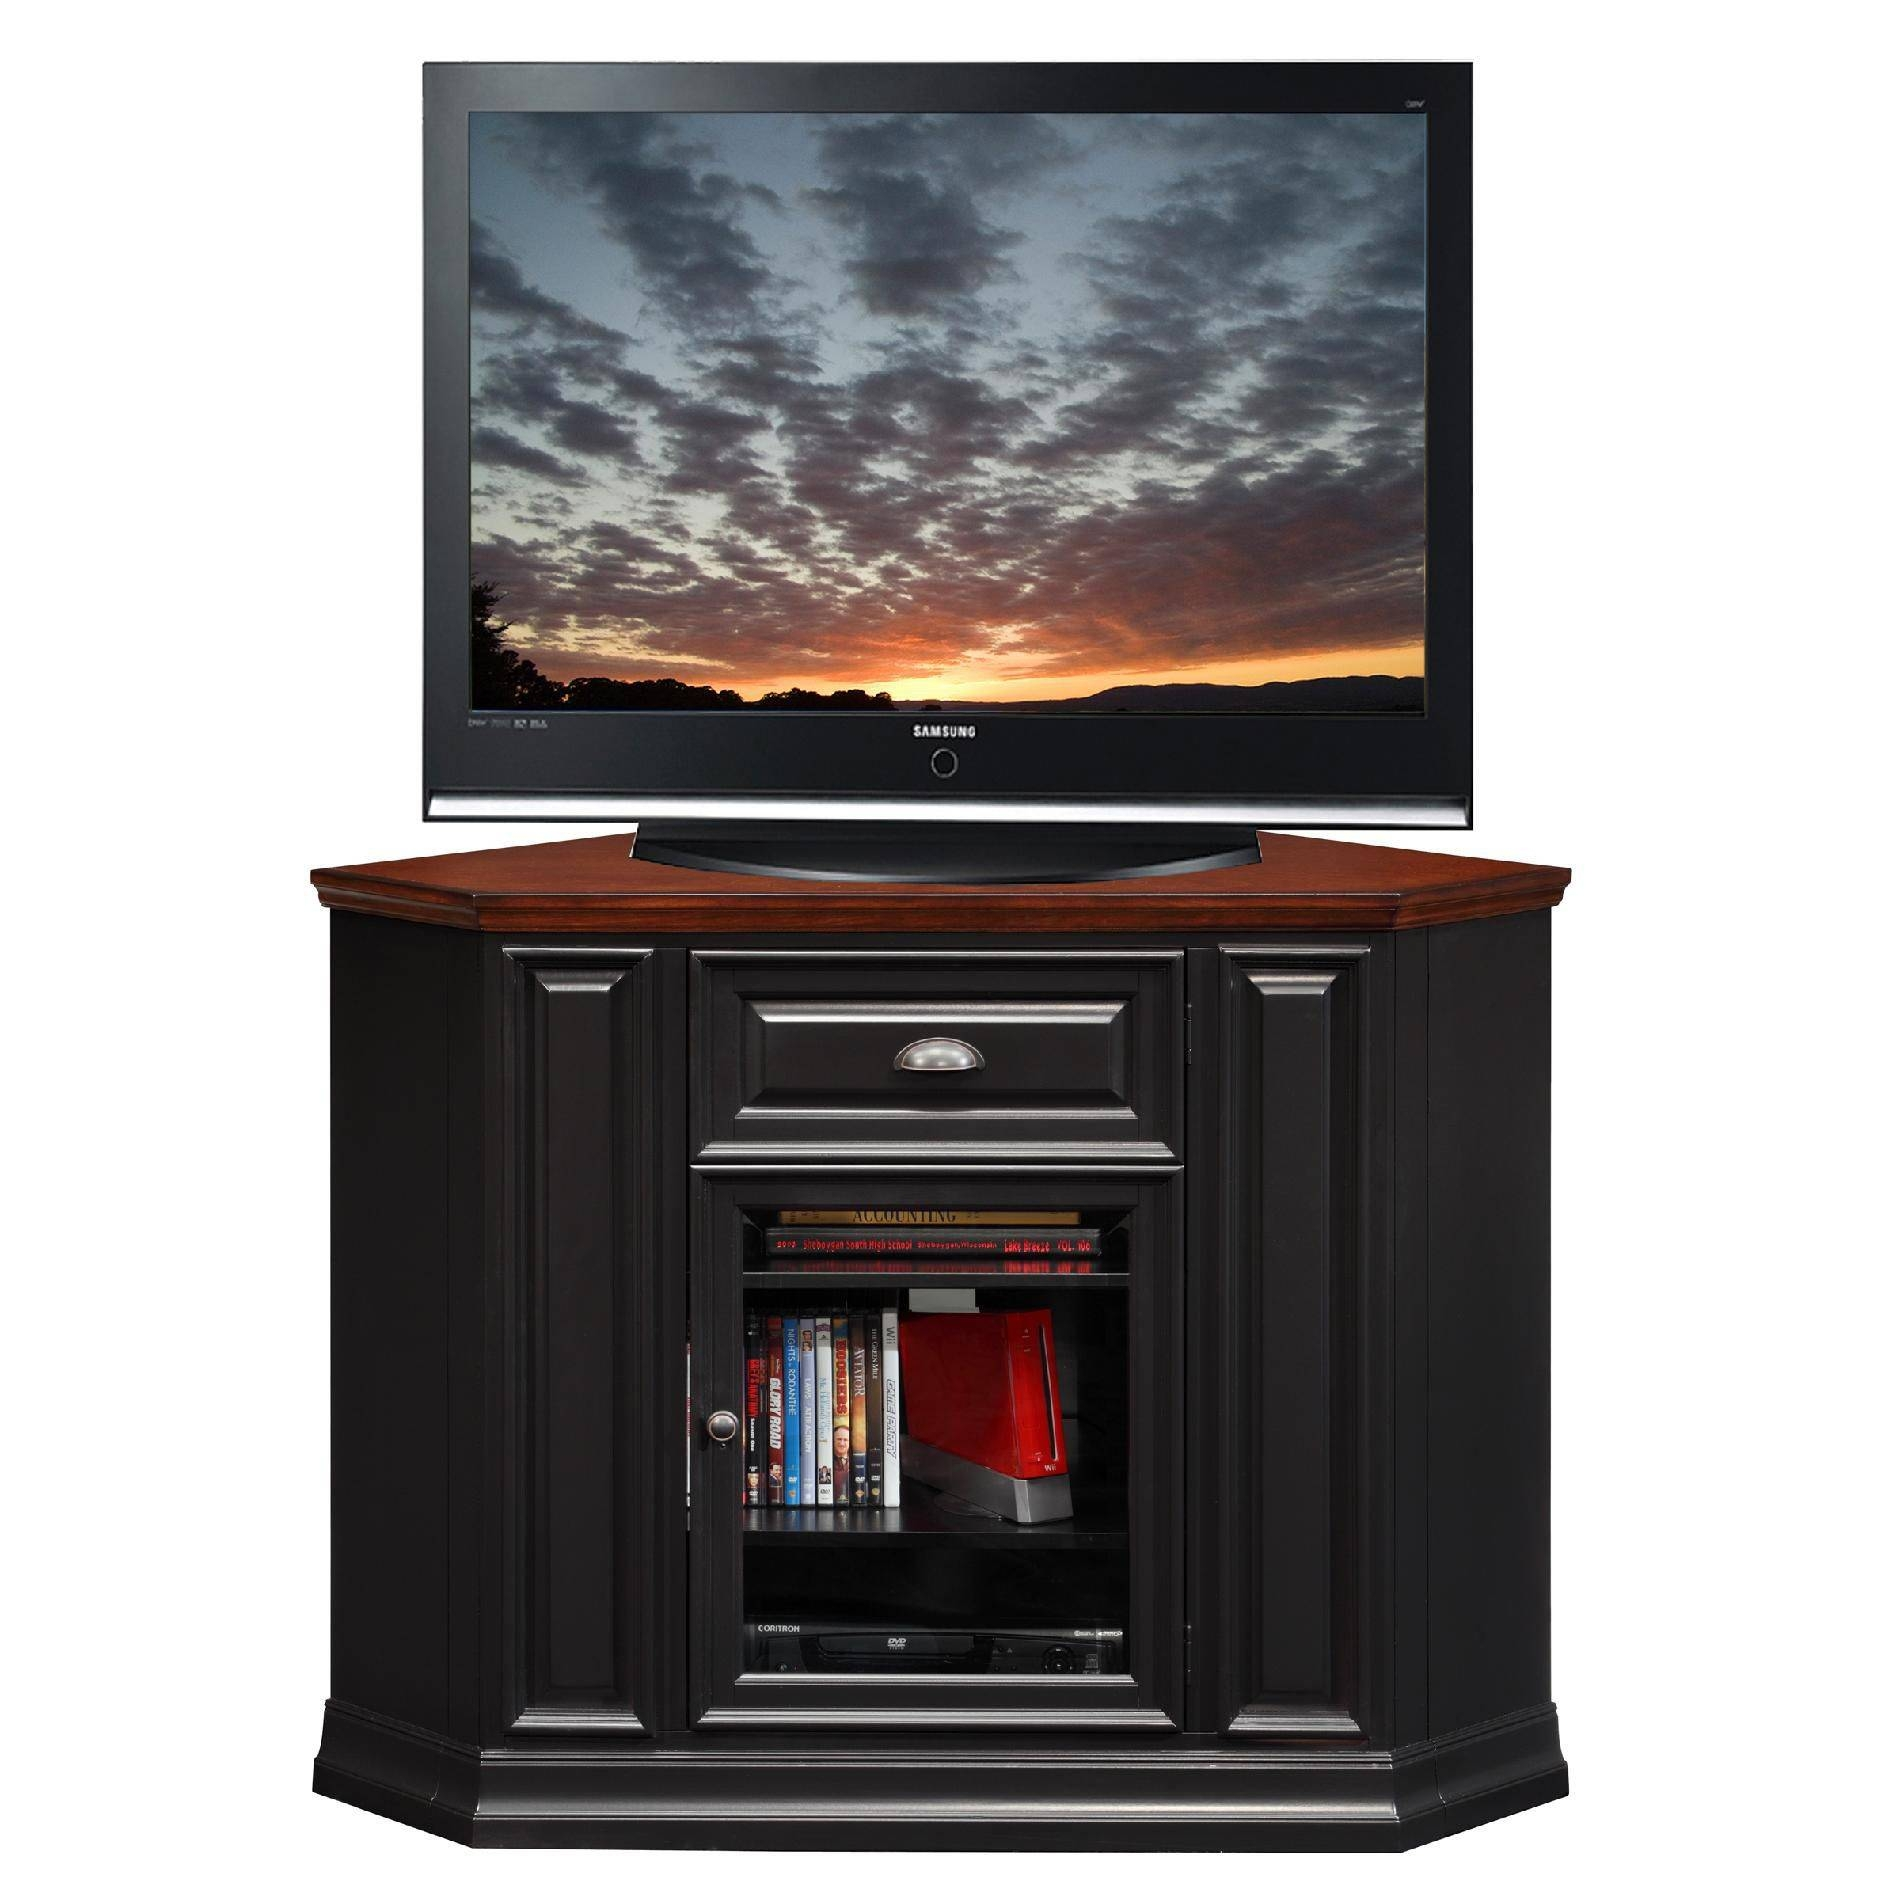 Furniture. Tall Black Wooden Corner Tv Cabinet With Glass Door For in Tall Black Tv Cabinets (Image 7 of 15)